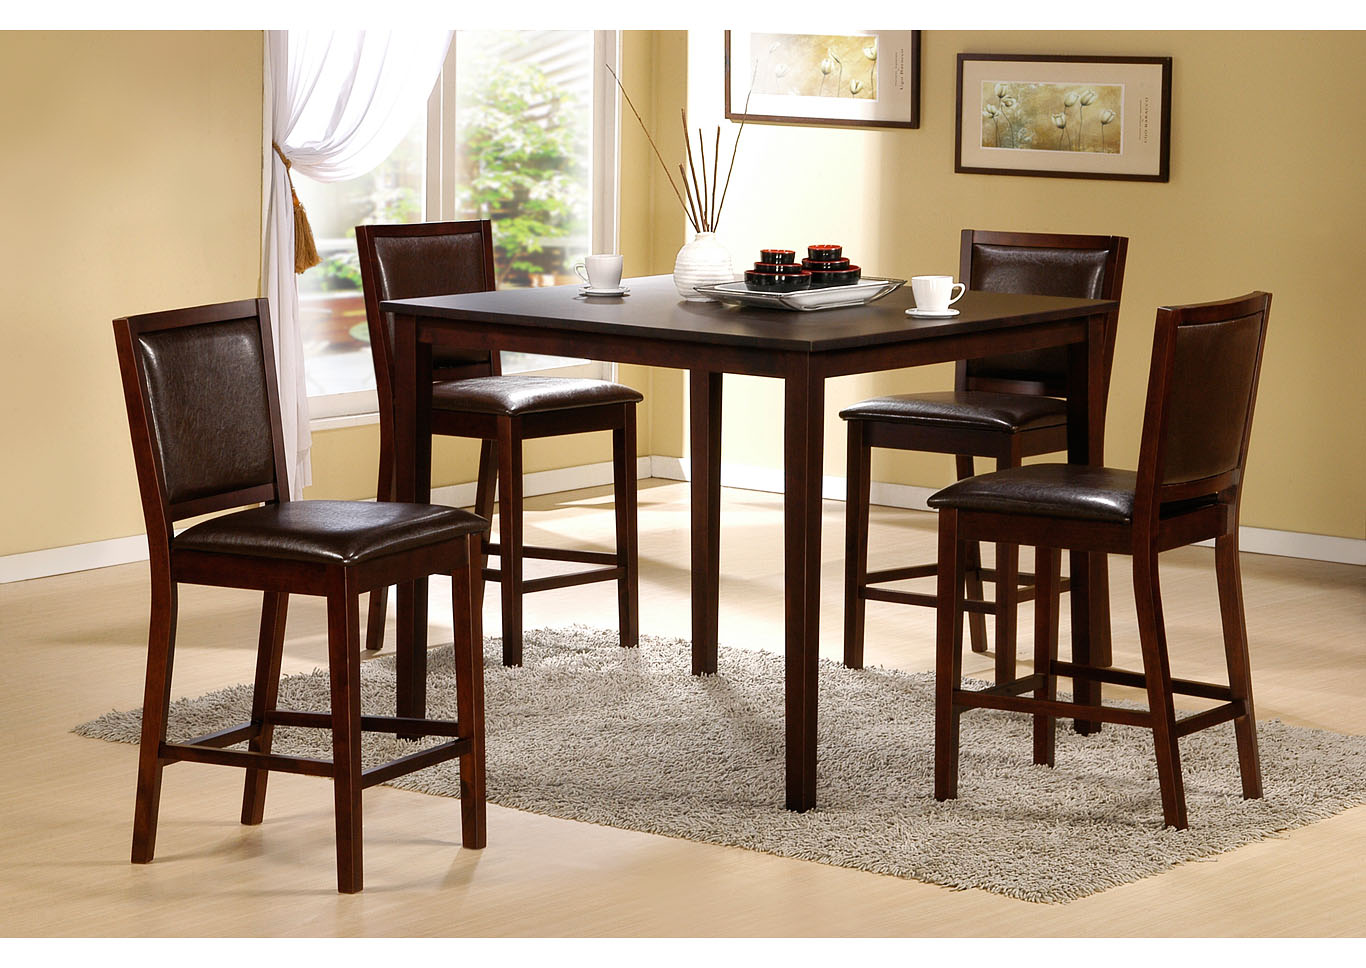 roses flooring and furniture 5pc counter height set espresso